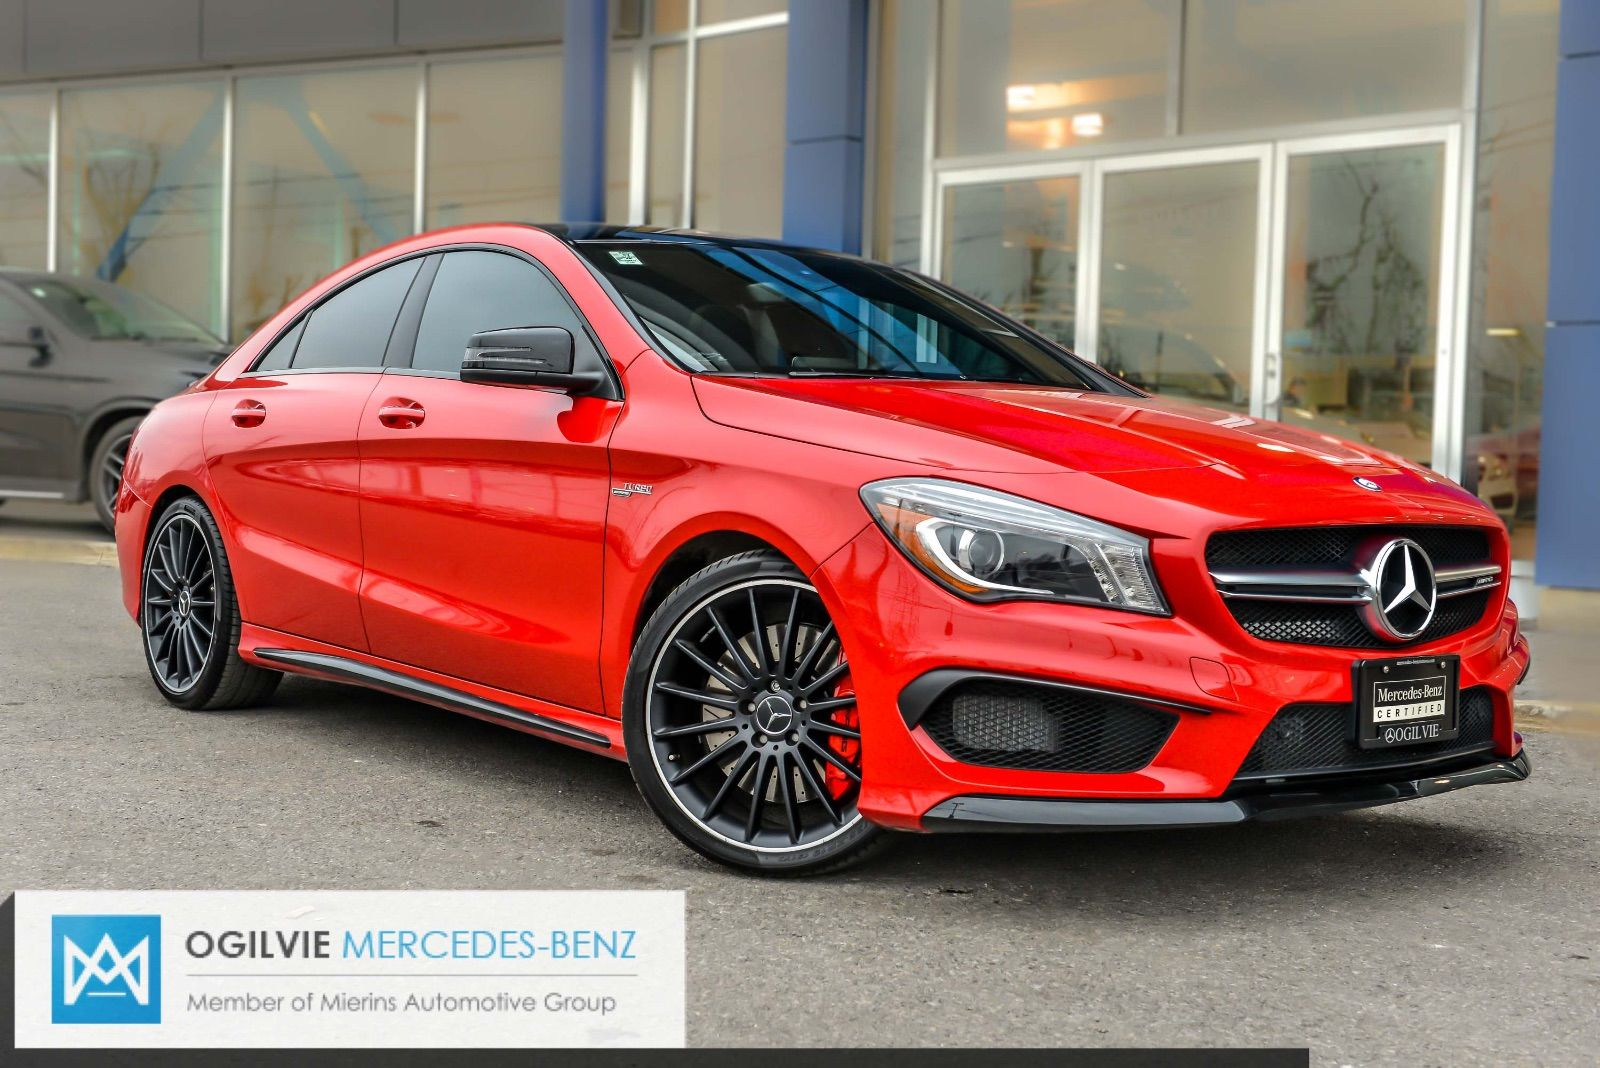 pre owned 2015 cla45 amg 4matic coupe for sale 57995 0 mercedes benz ottawa. Black Bedroom Furniture Sets. Home Design Ideas